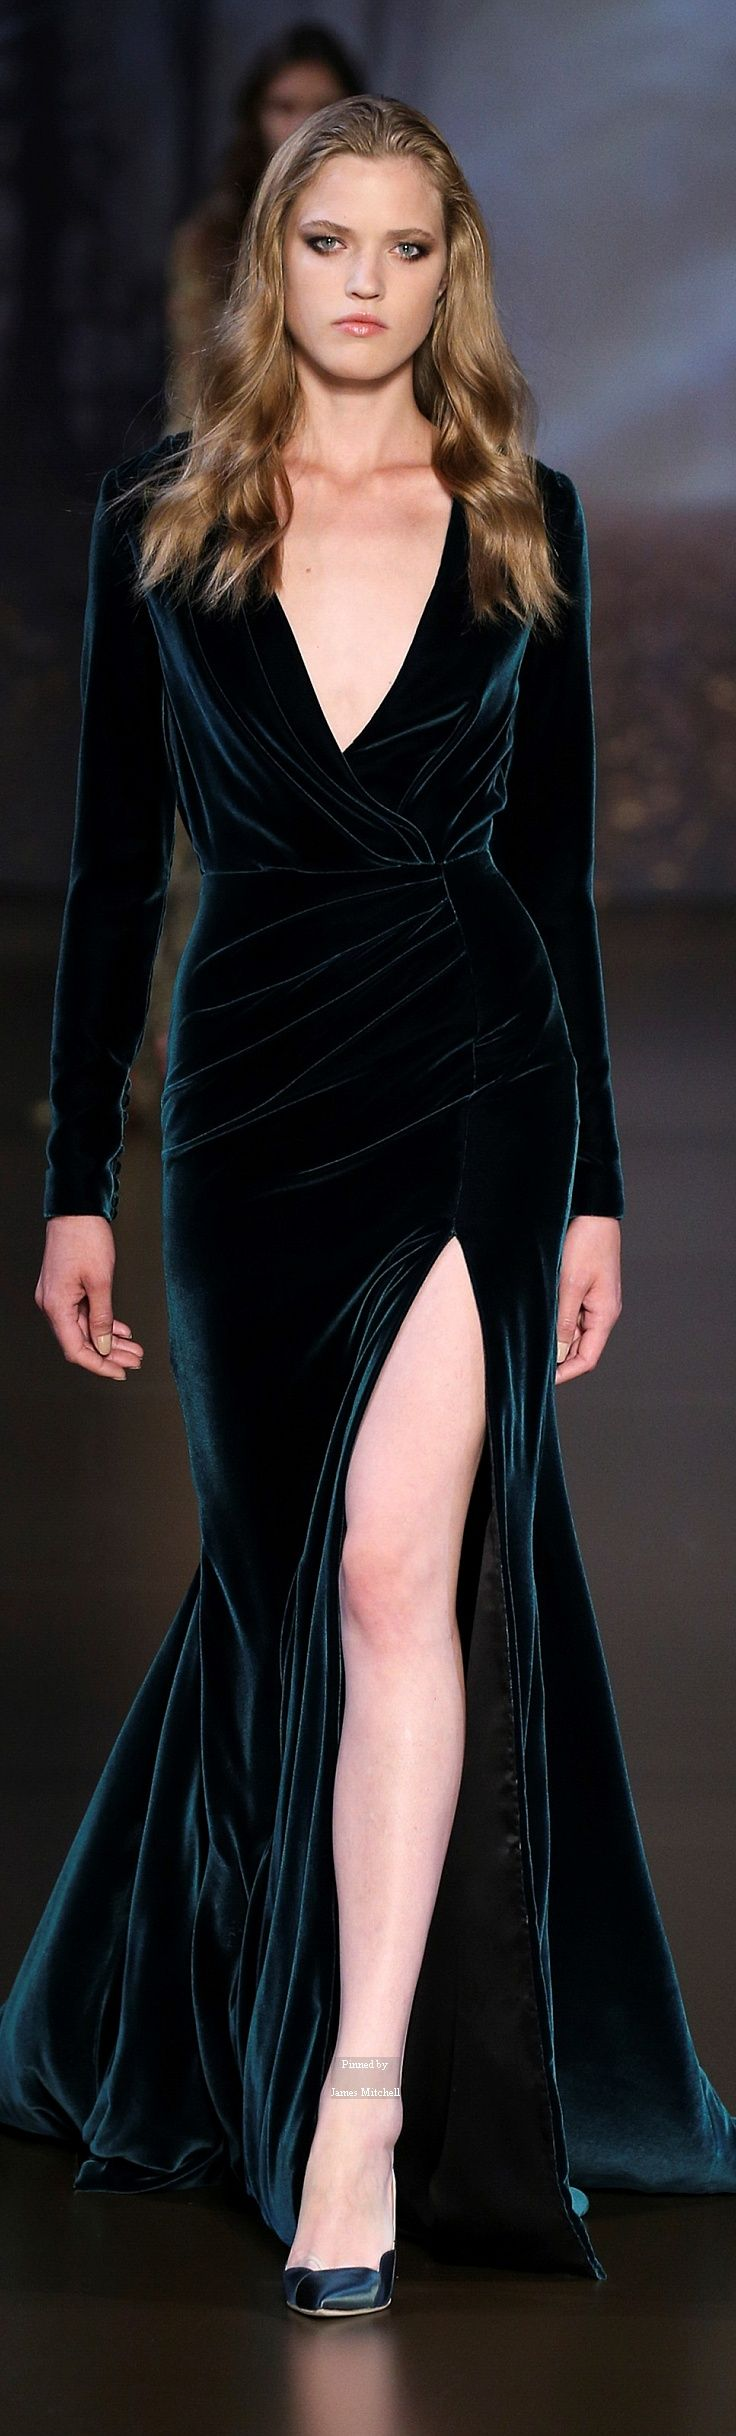 Ralph & Russo Couture, fall 2016. Love velvet dresses. They're classy and perfect for fall/winter events. I'm loving this look. Sexy and sultry. Grrr: